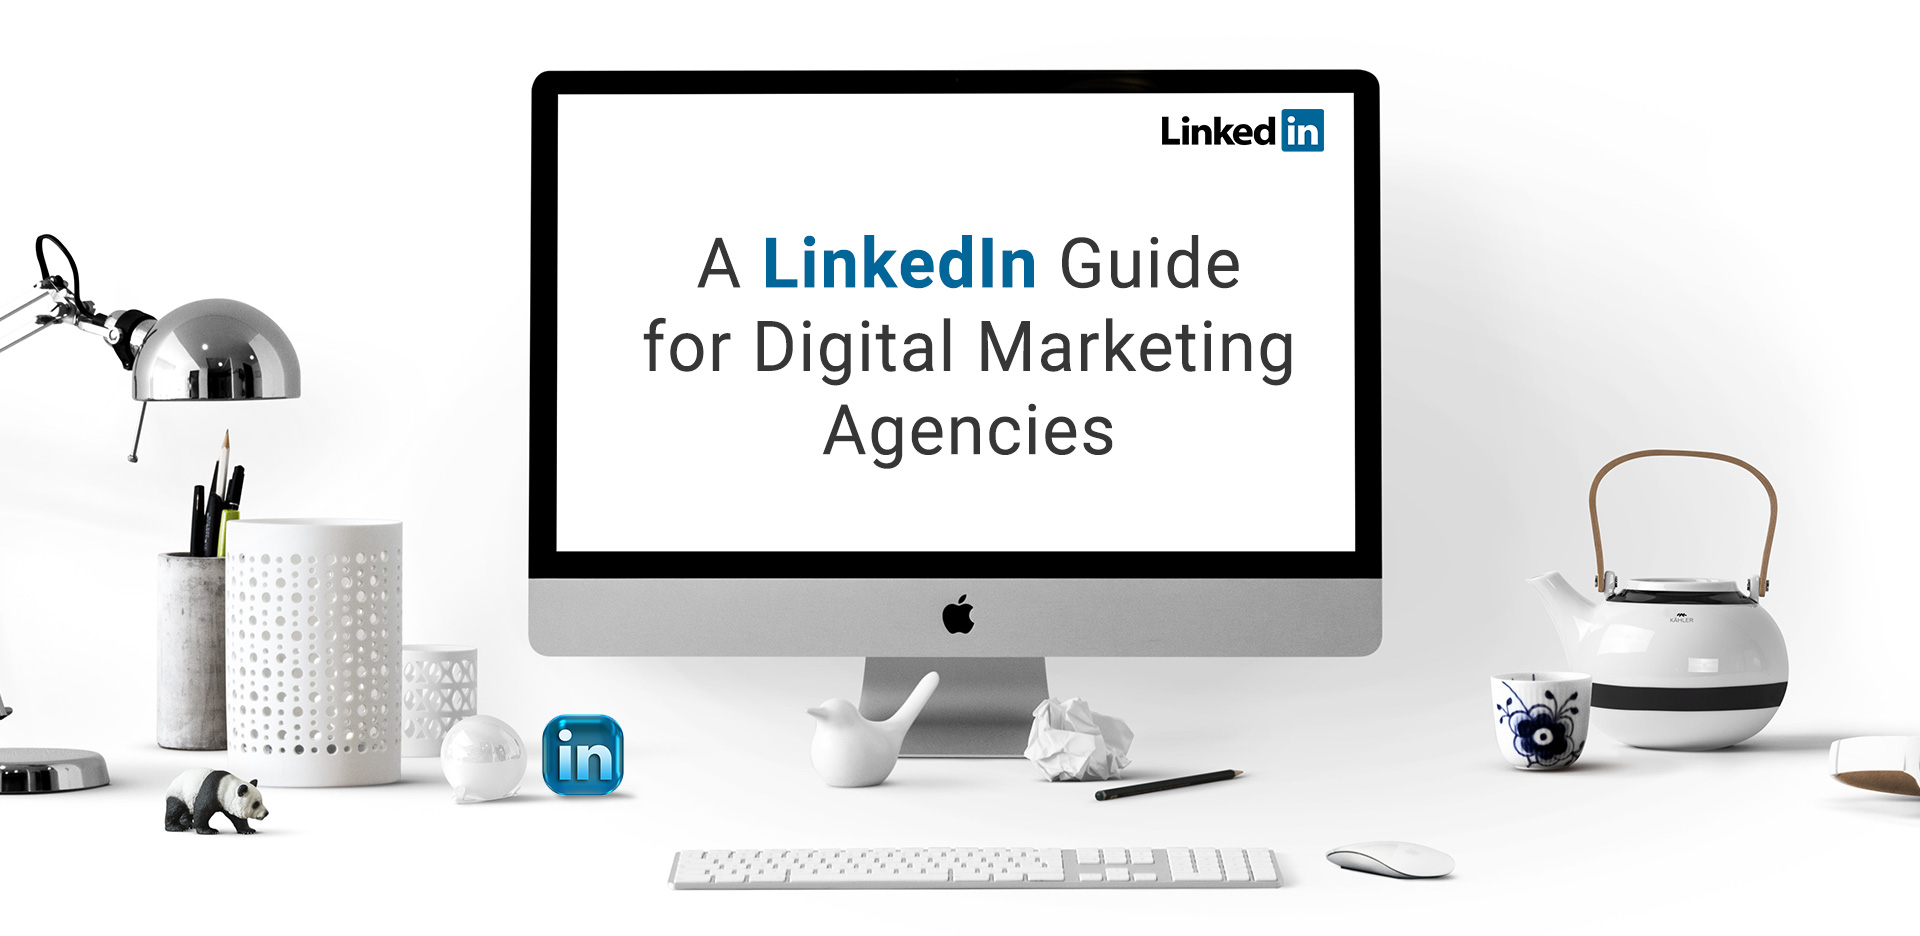 A LinkedIn Guide for Digital Marketing Agencies